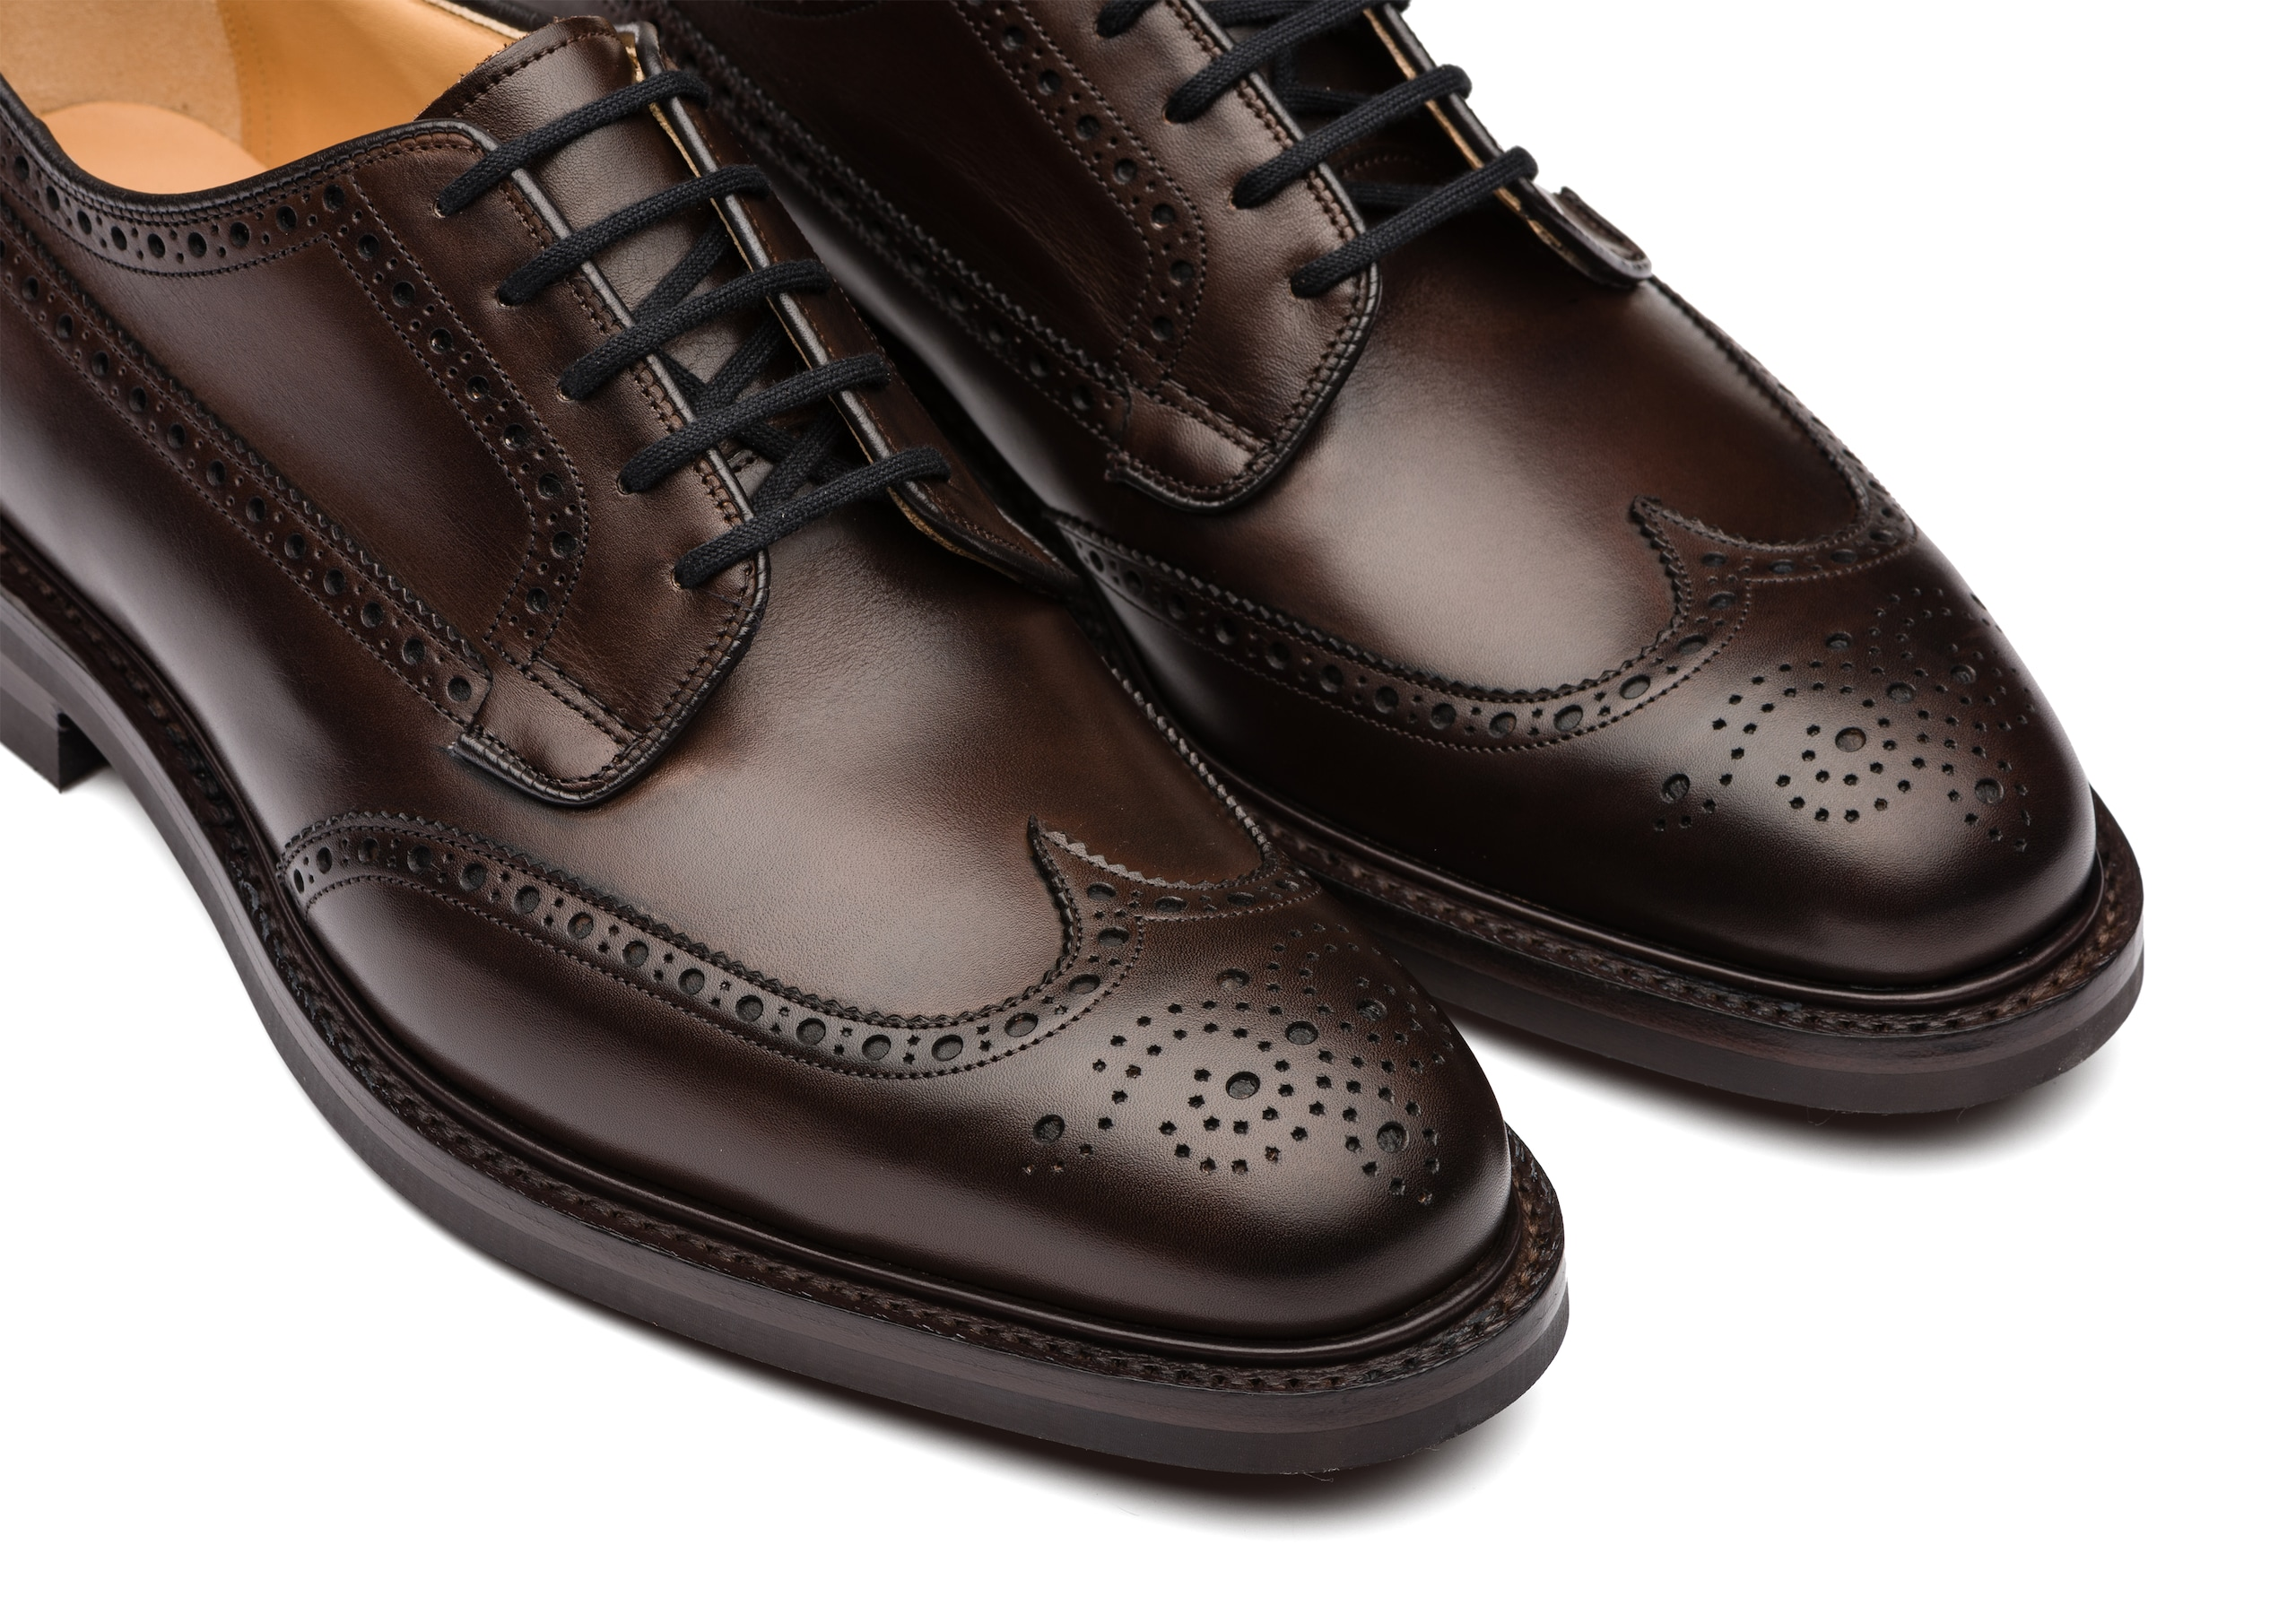 Grafton r 173 Church's Nevada Leather Derby Brogue Brown